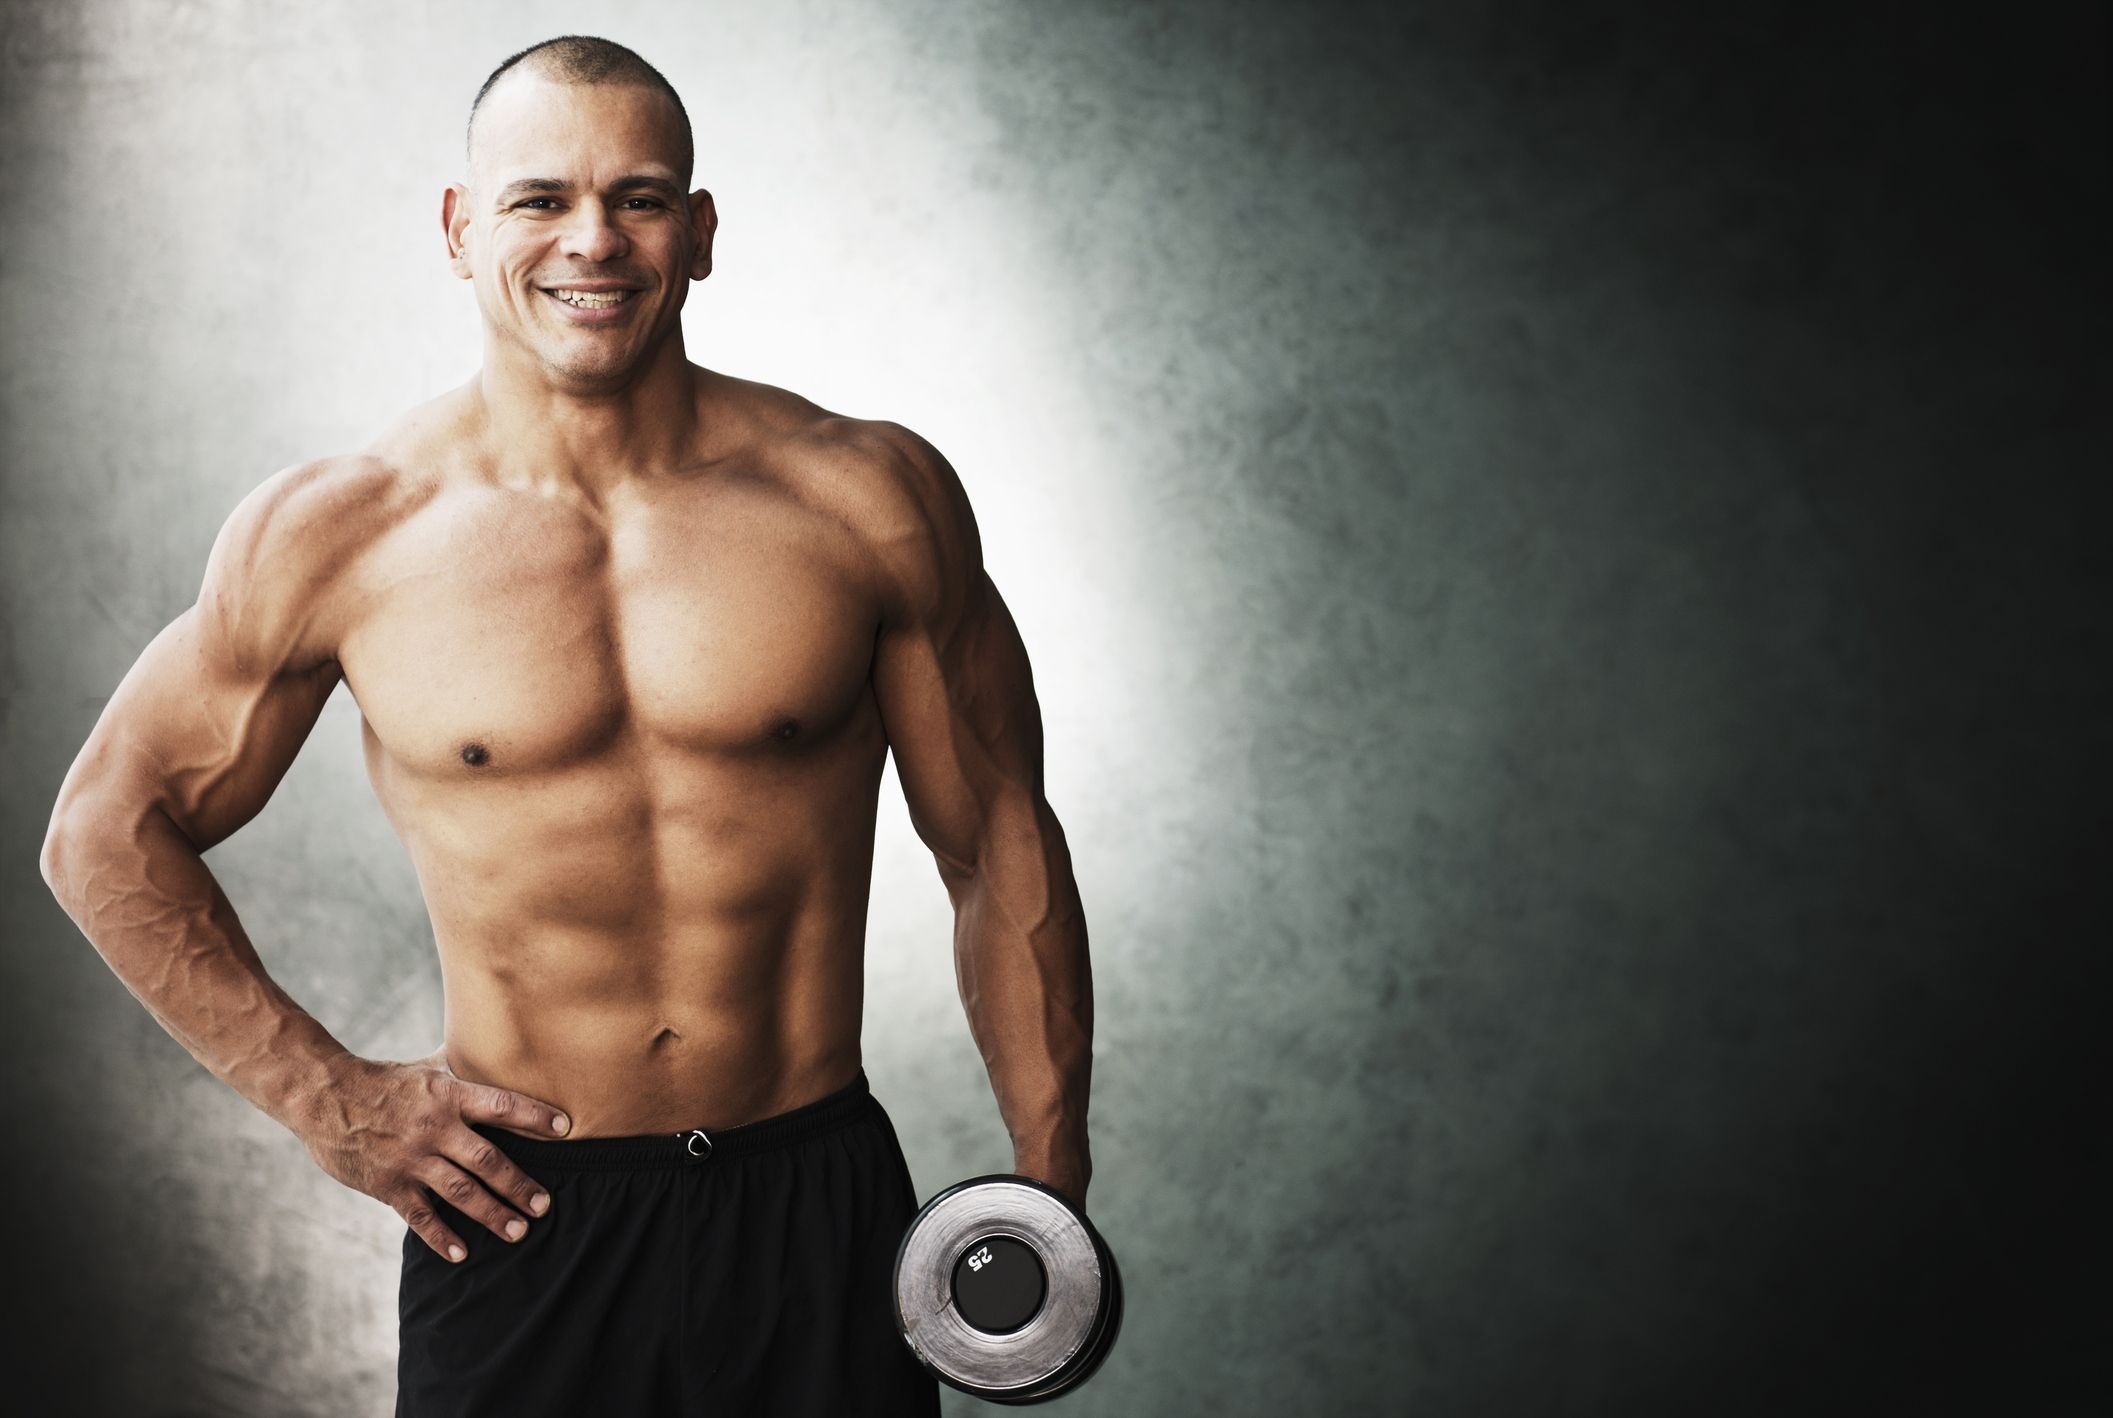 This 2-Move Dumbbell Shoulder Workout Is Great for Men Over 40